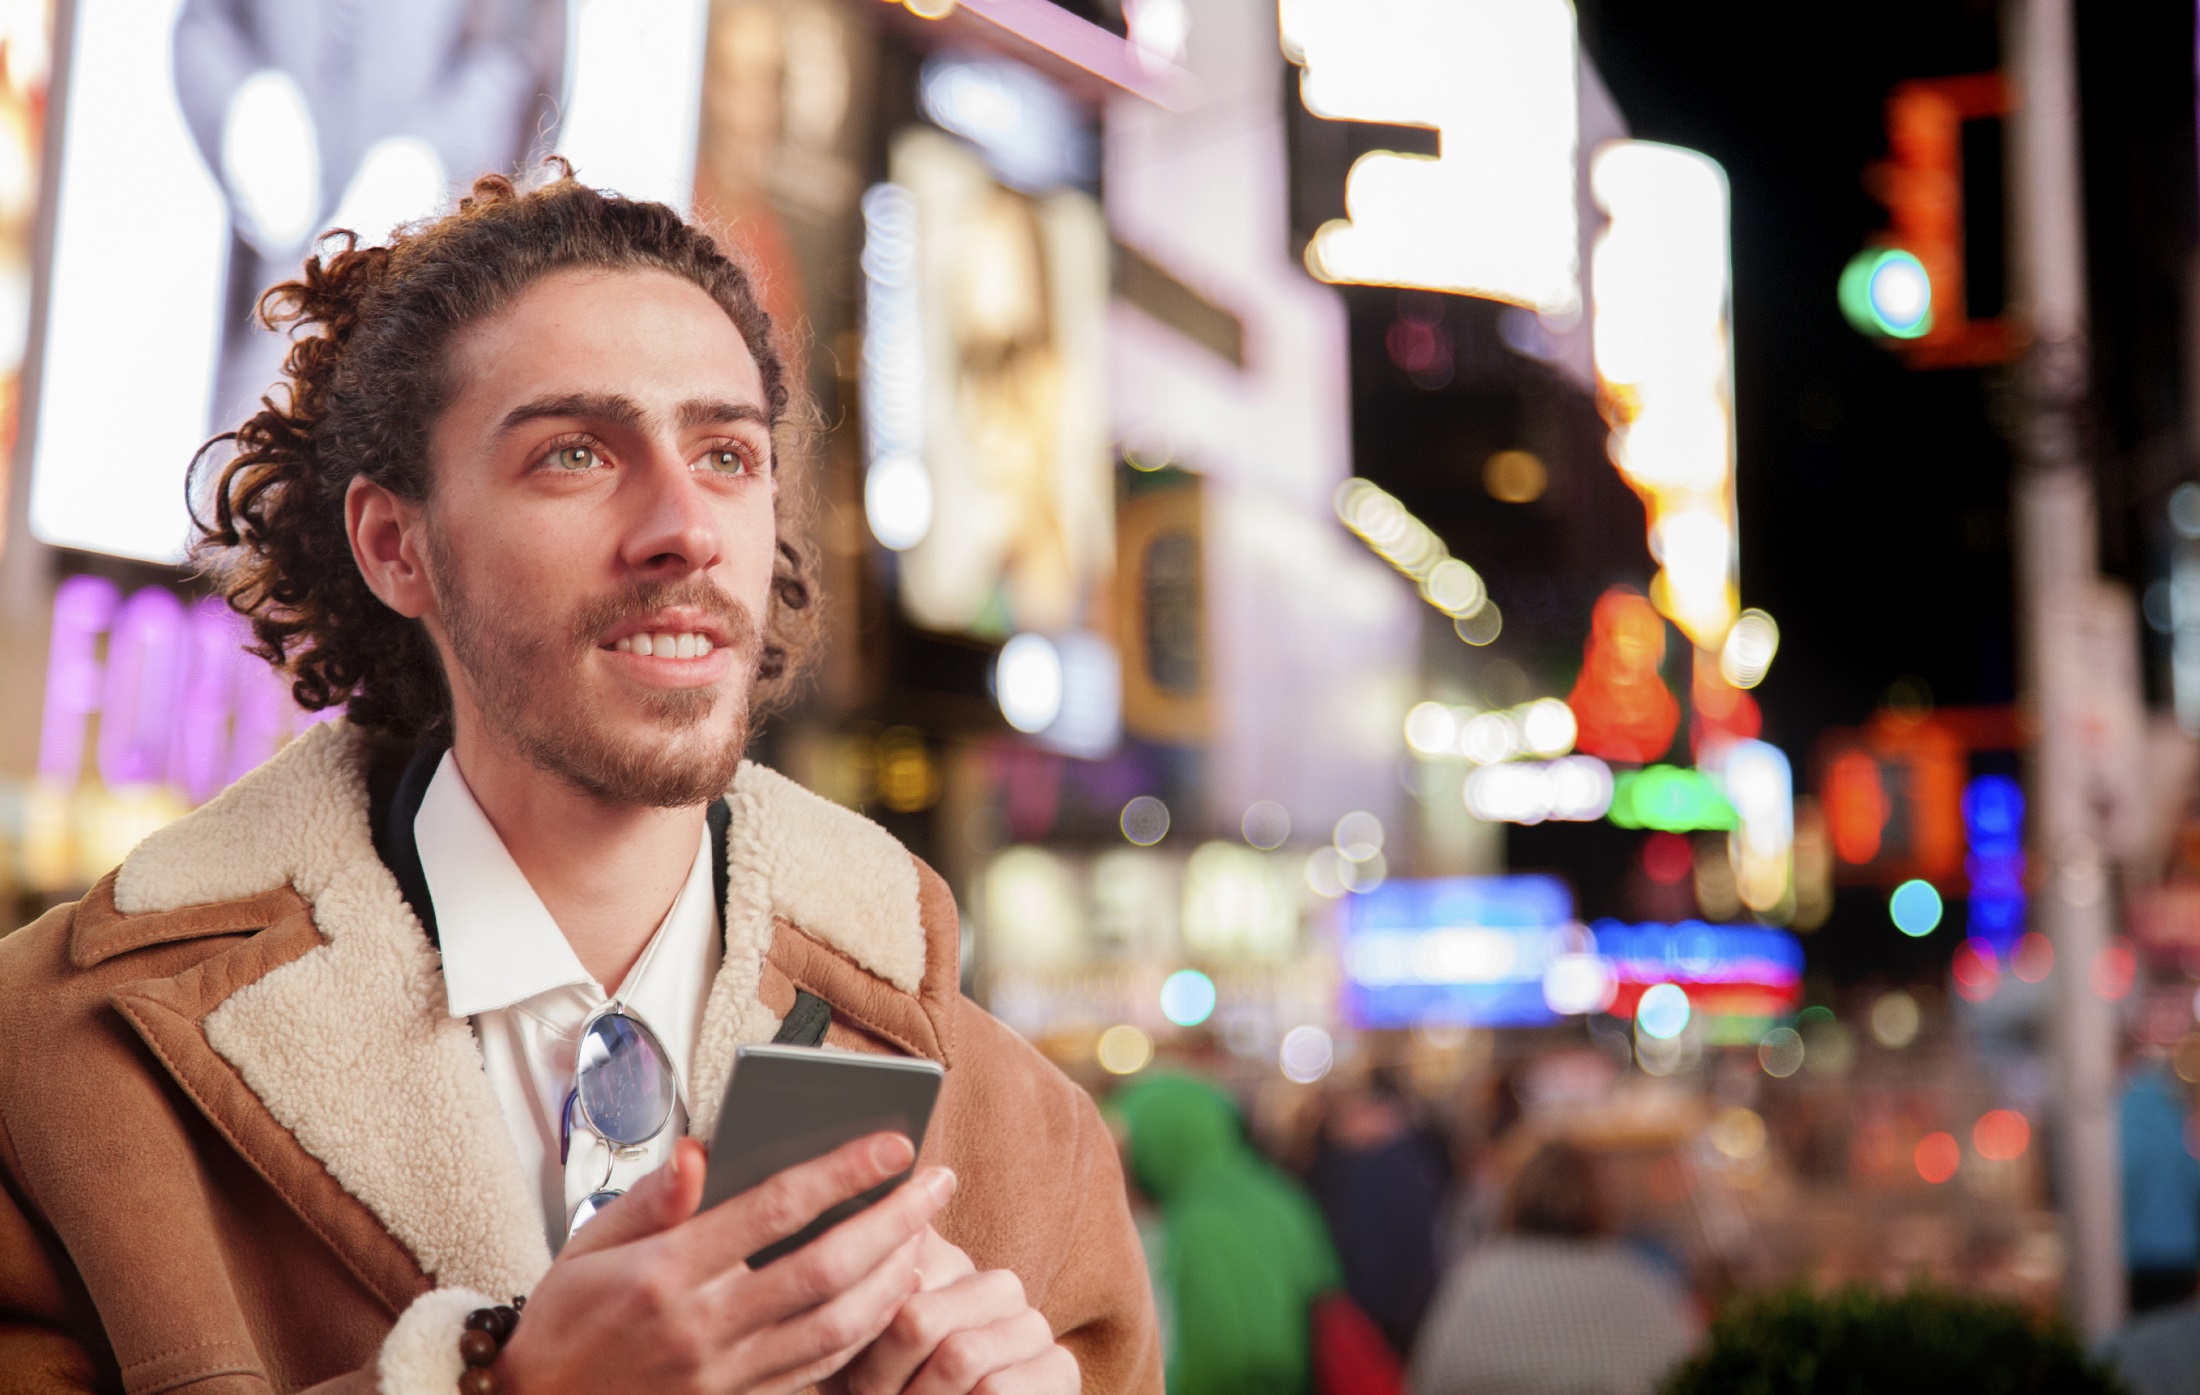 10 Travel Apps That Save You Time and Money This NYE